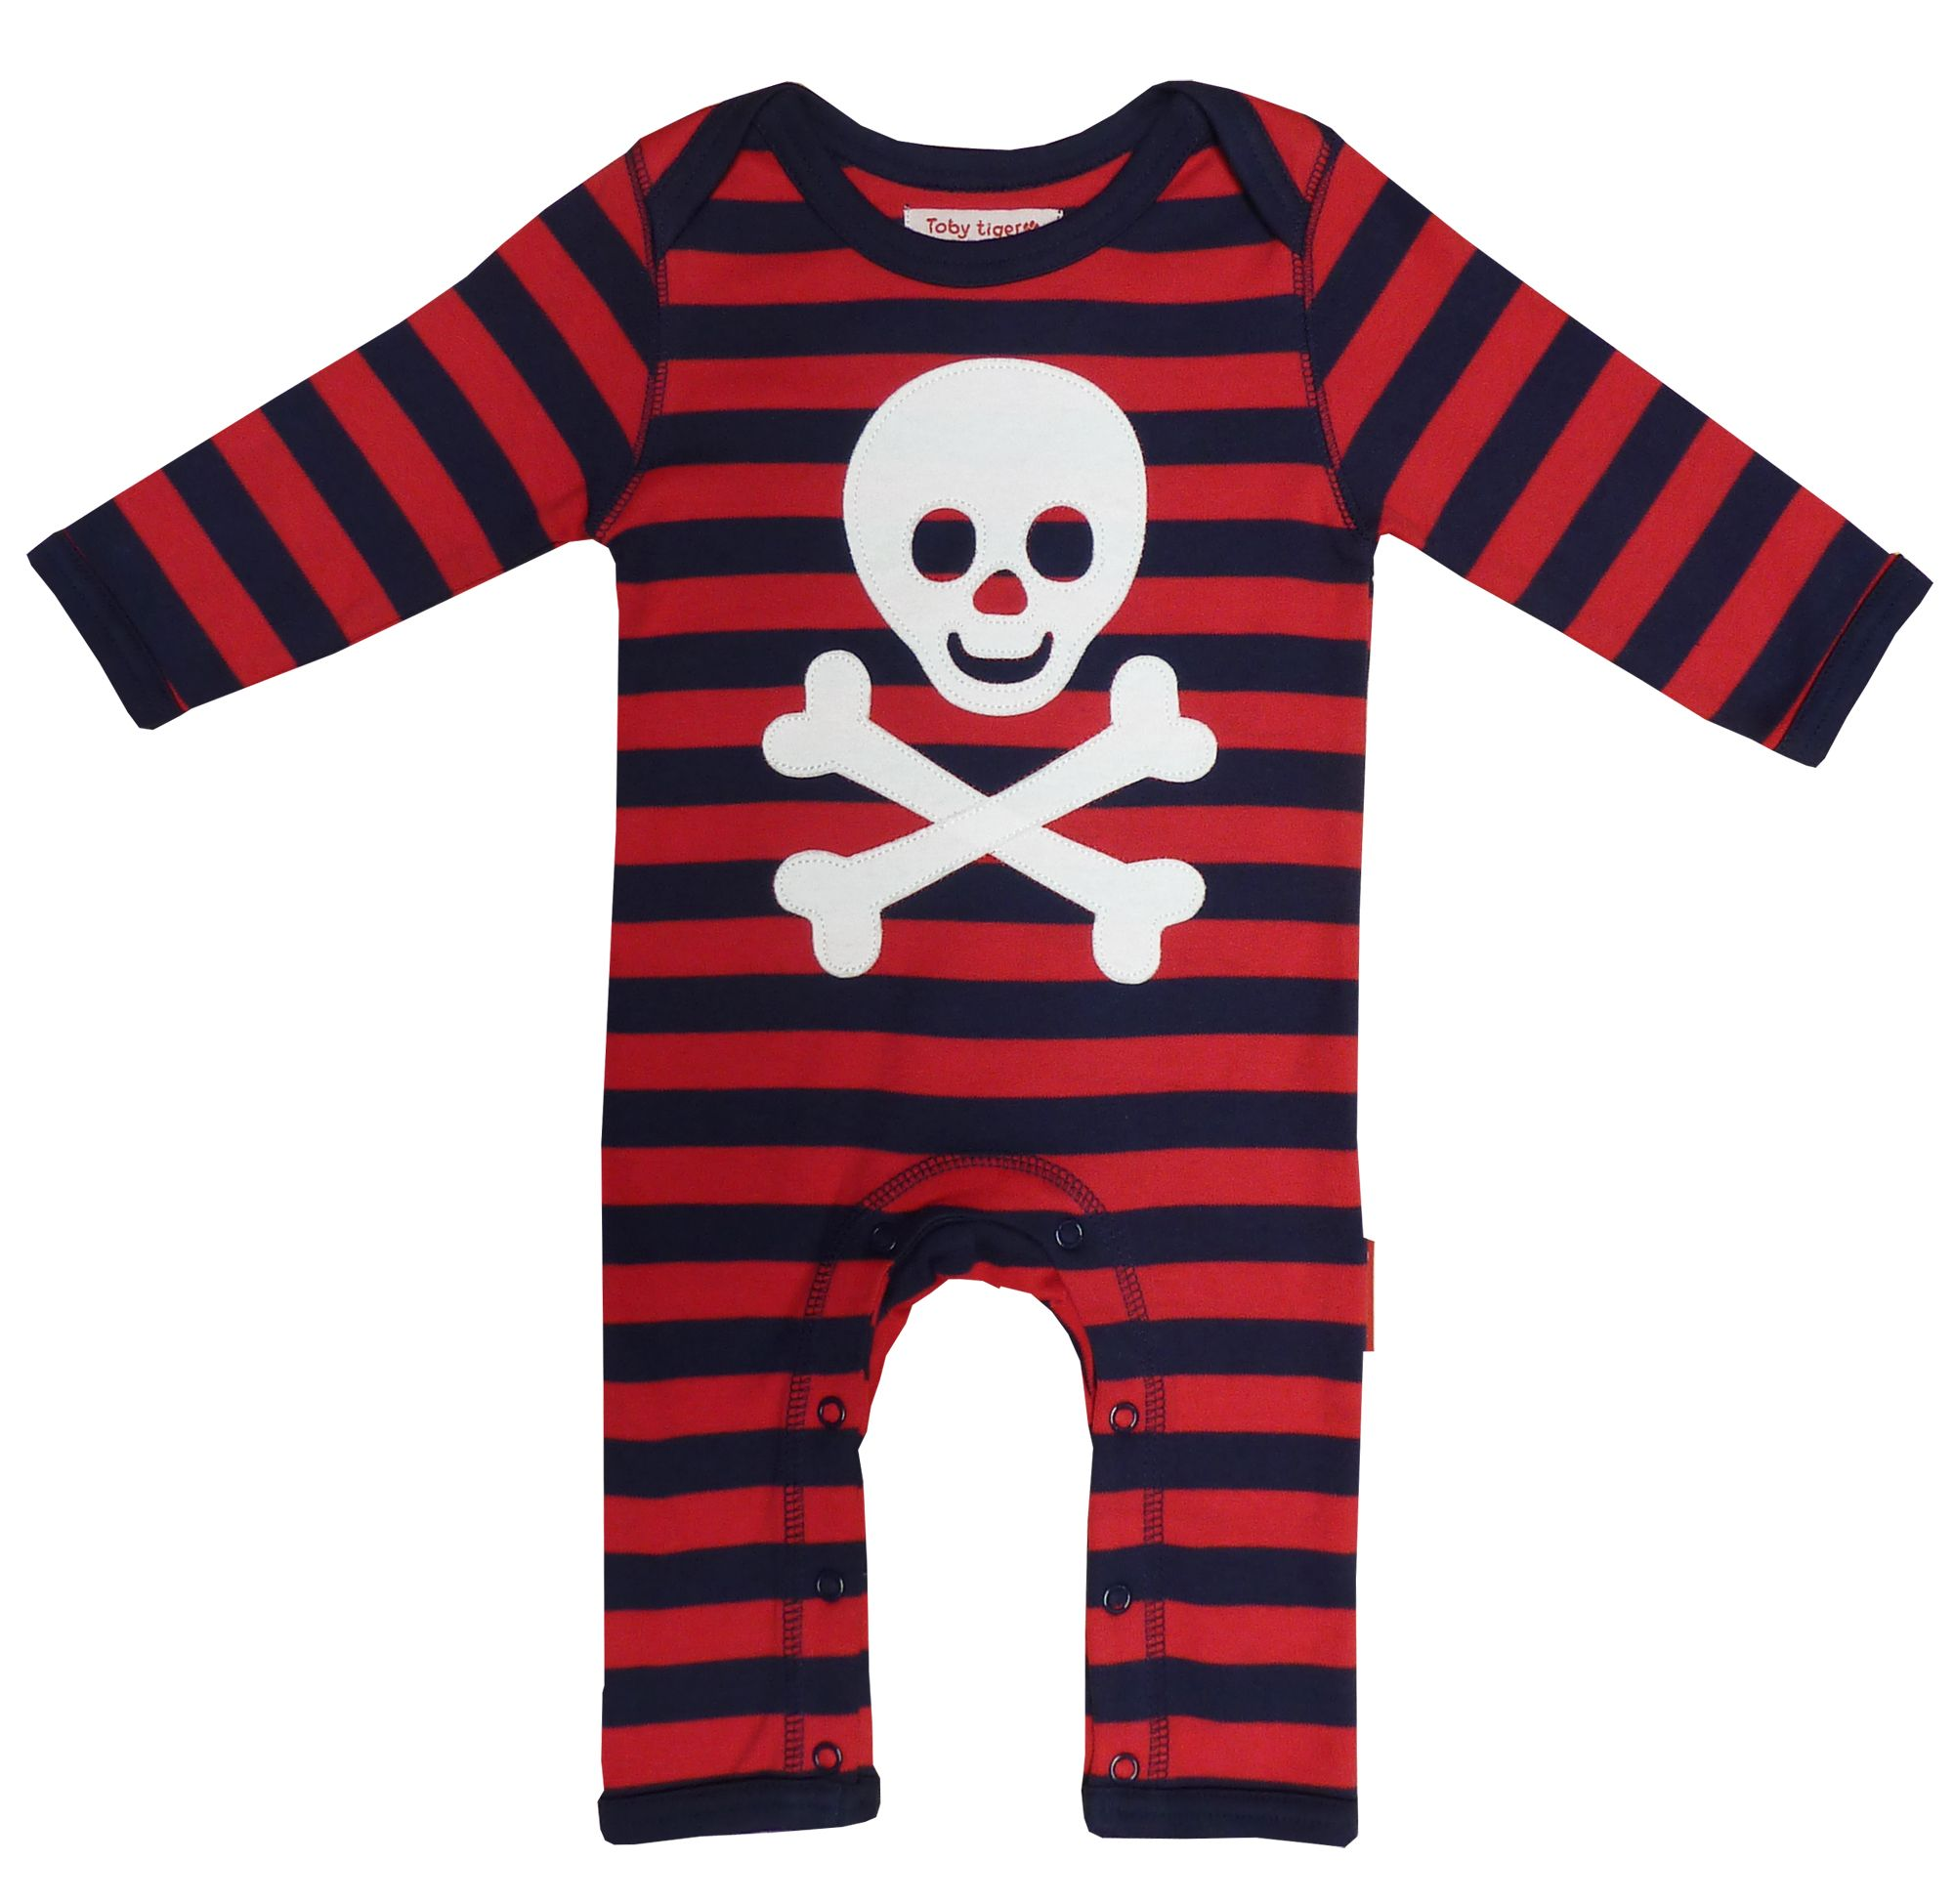 Toby Tiger Baby organic cotton pirate sleepsuit, Red